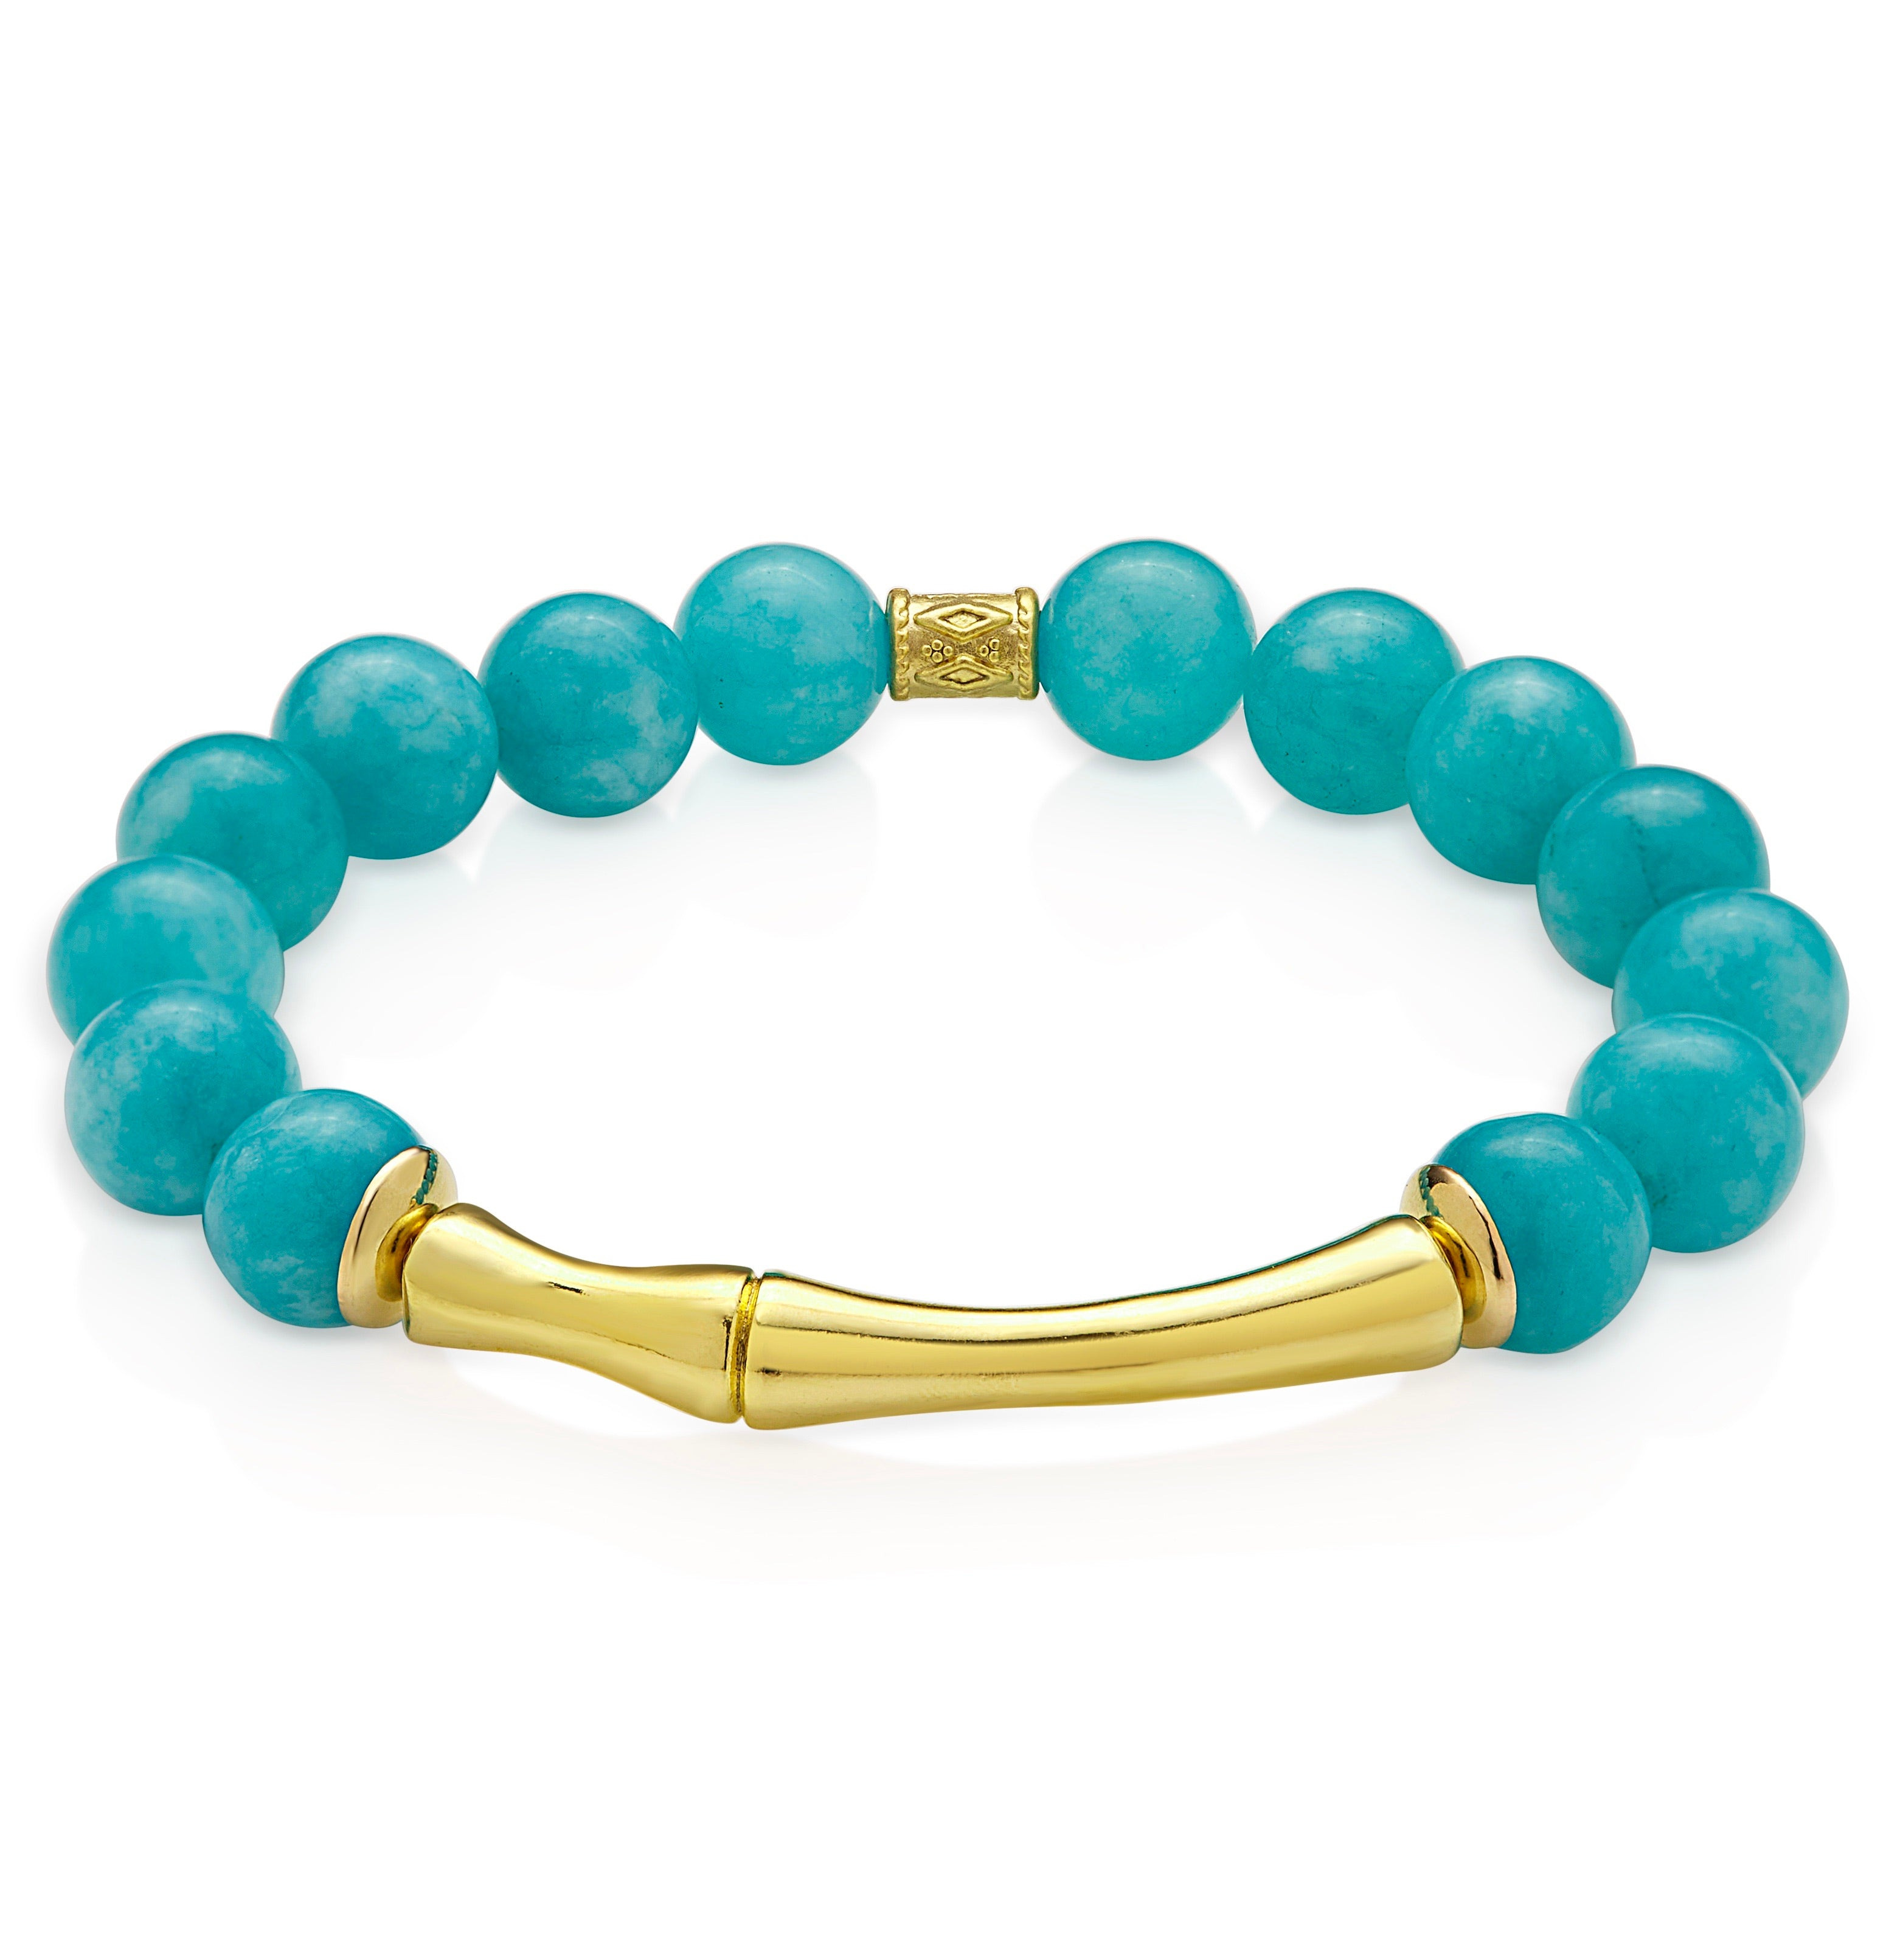 Aria-V Blue Lagoon bracelet handcrafted in Ireland with polished aqua blue jade and 24k gold plated bamboo connector.